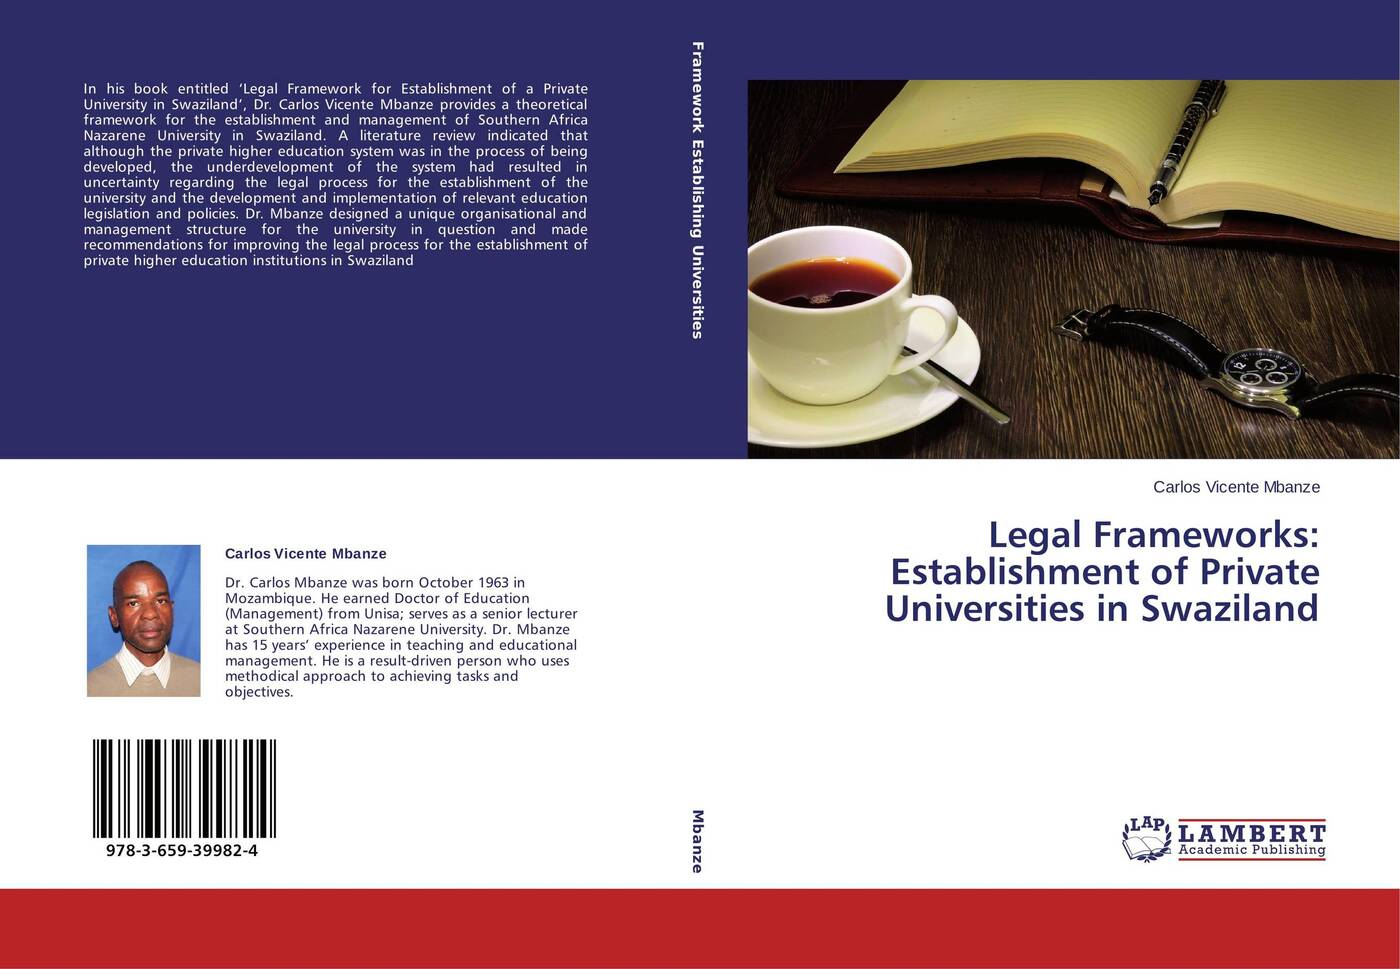 Carlos Vicente Mbanze Legal Frameworks: Establishment of Private Universities in Swaziland public administration and development improving accountability responsiveness and legal framework